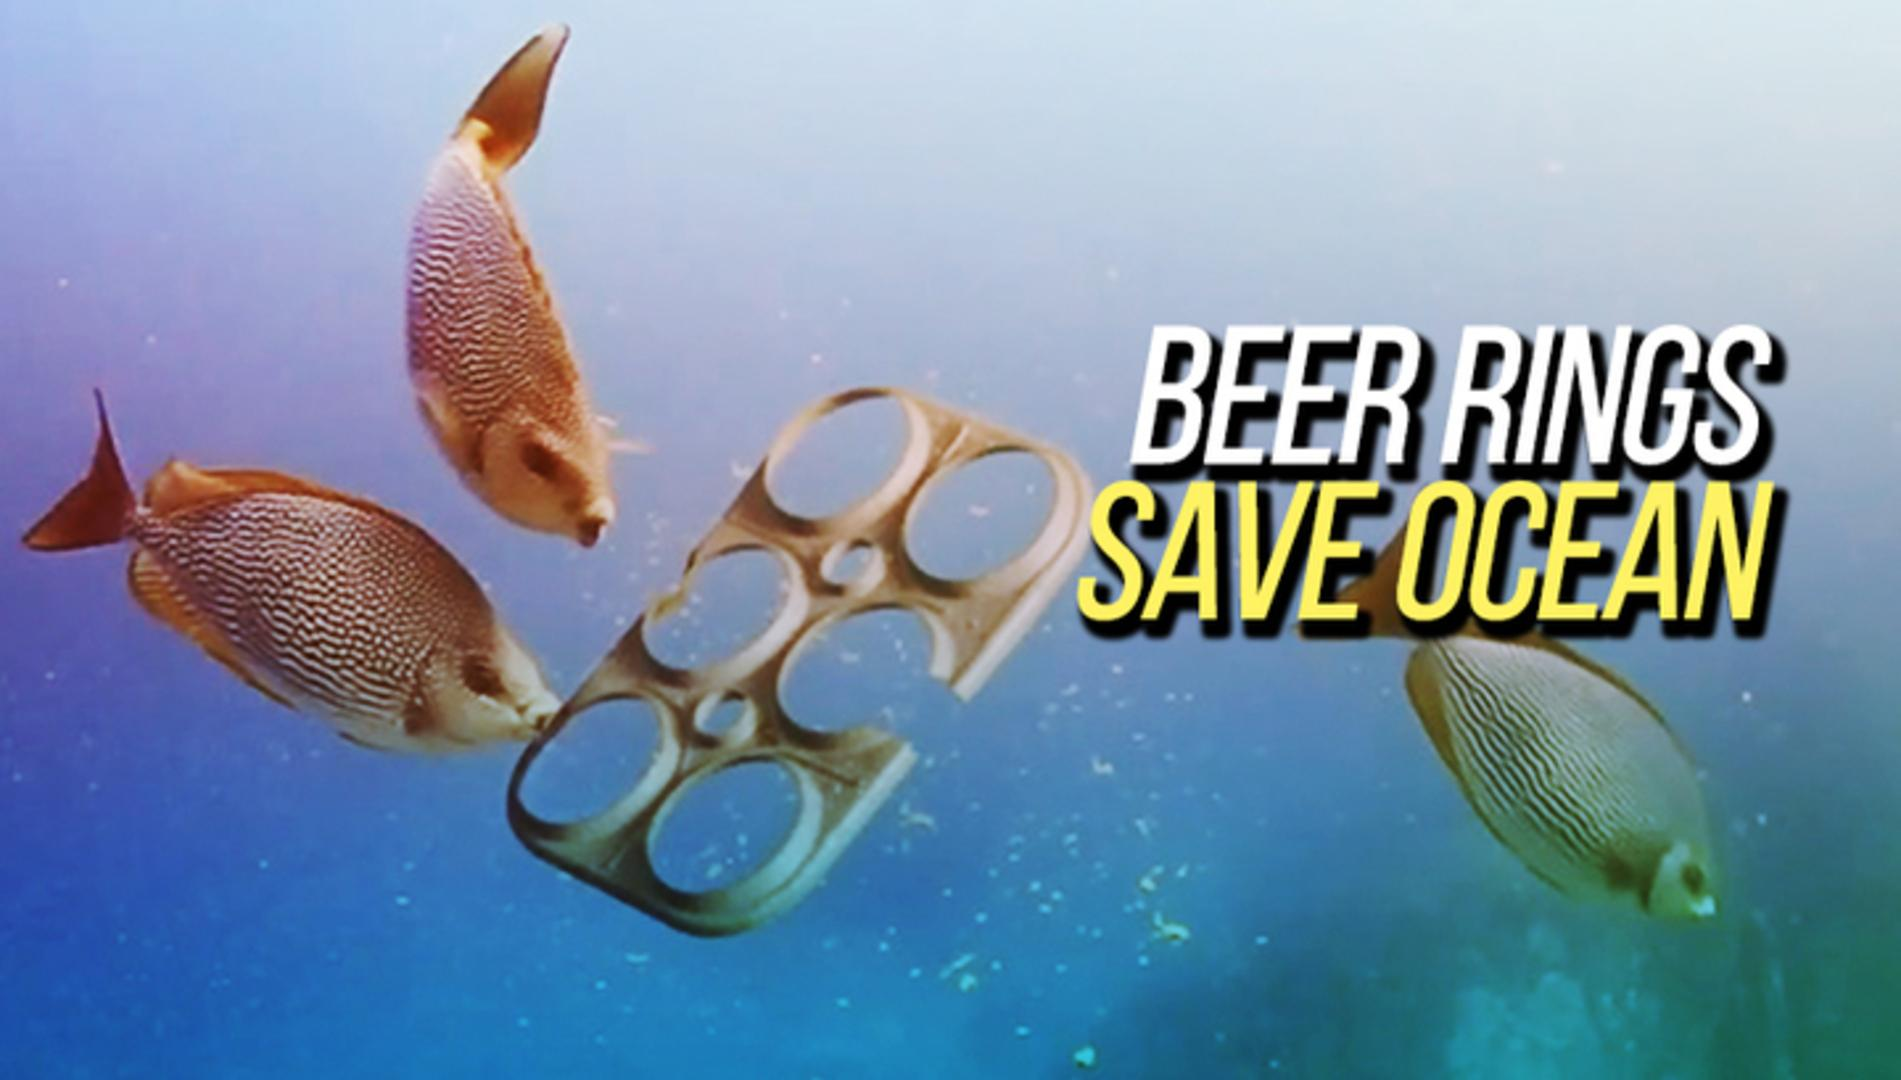 Biodegradable Beer Rings Save Ocean